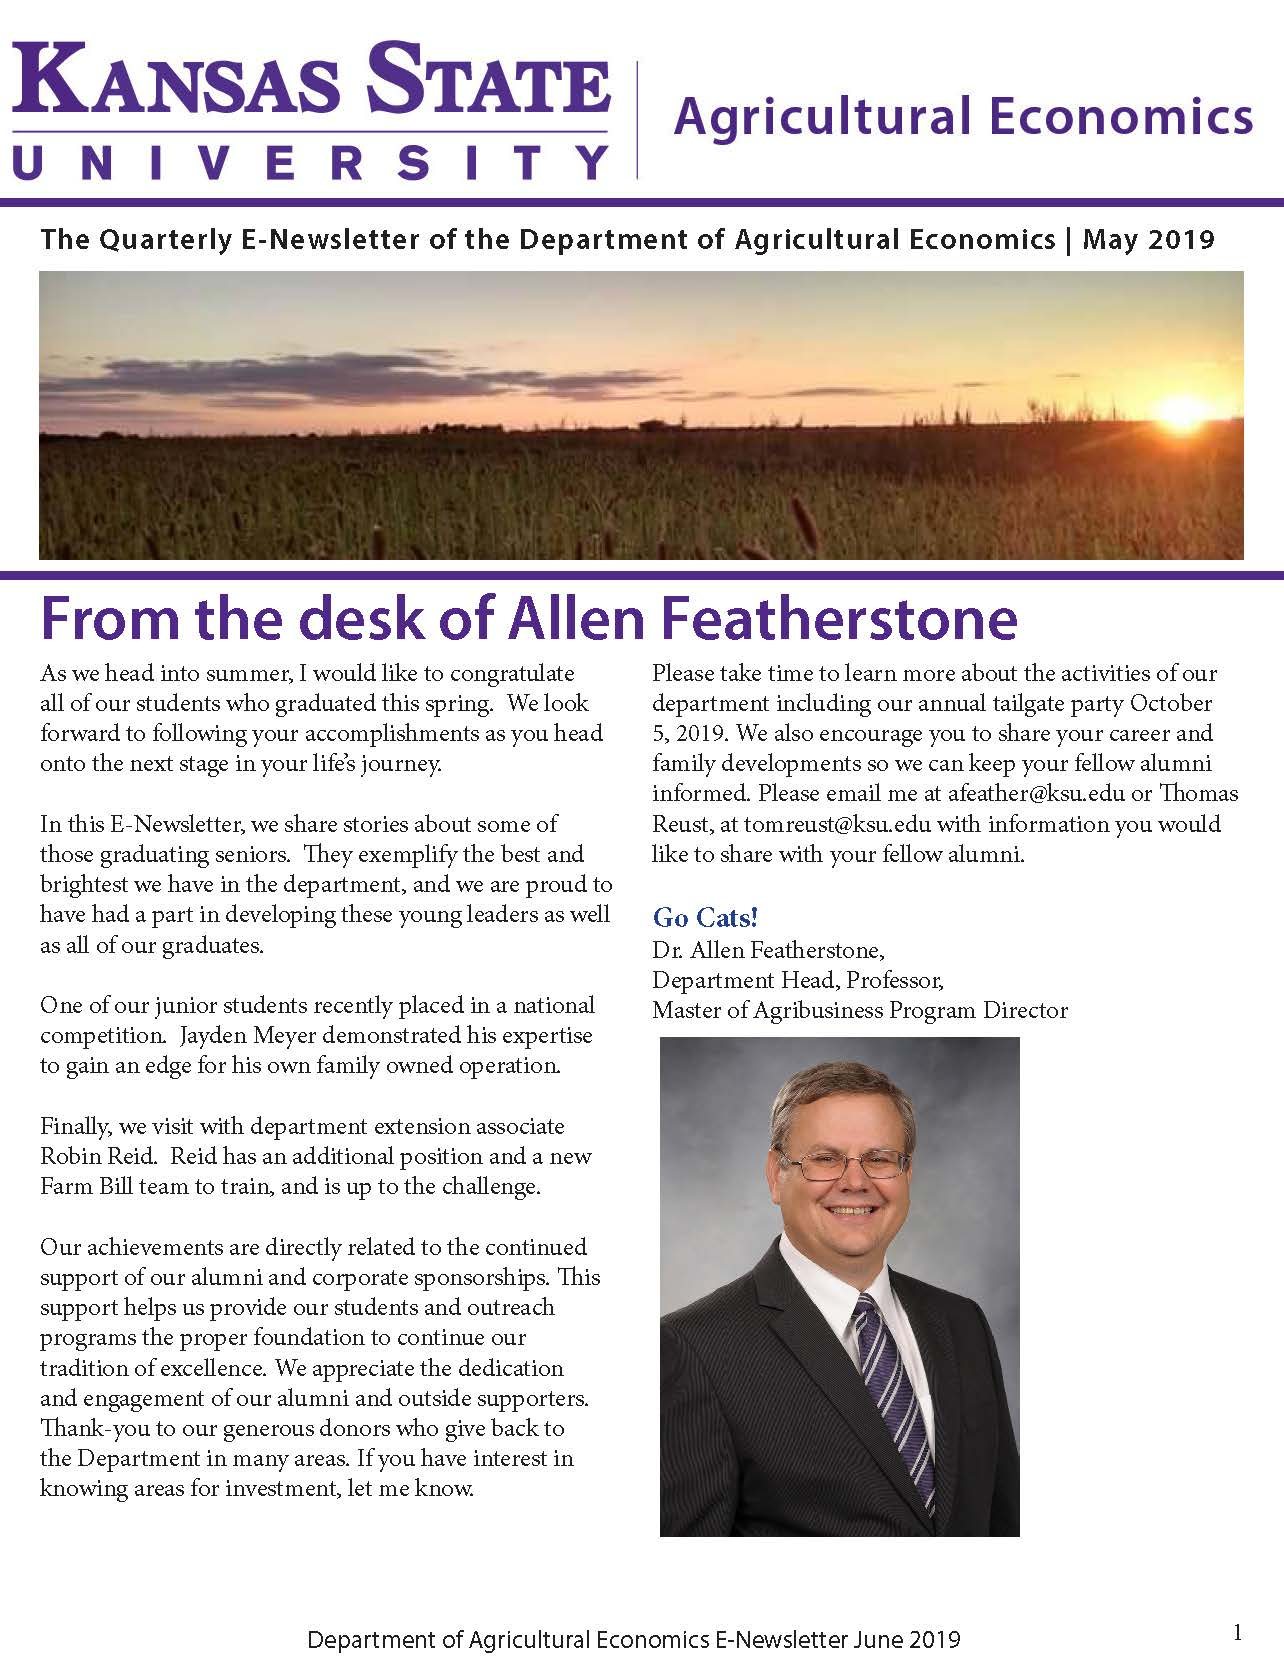 Newsletters | K-State Agricultural Economics